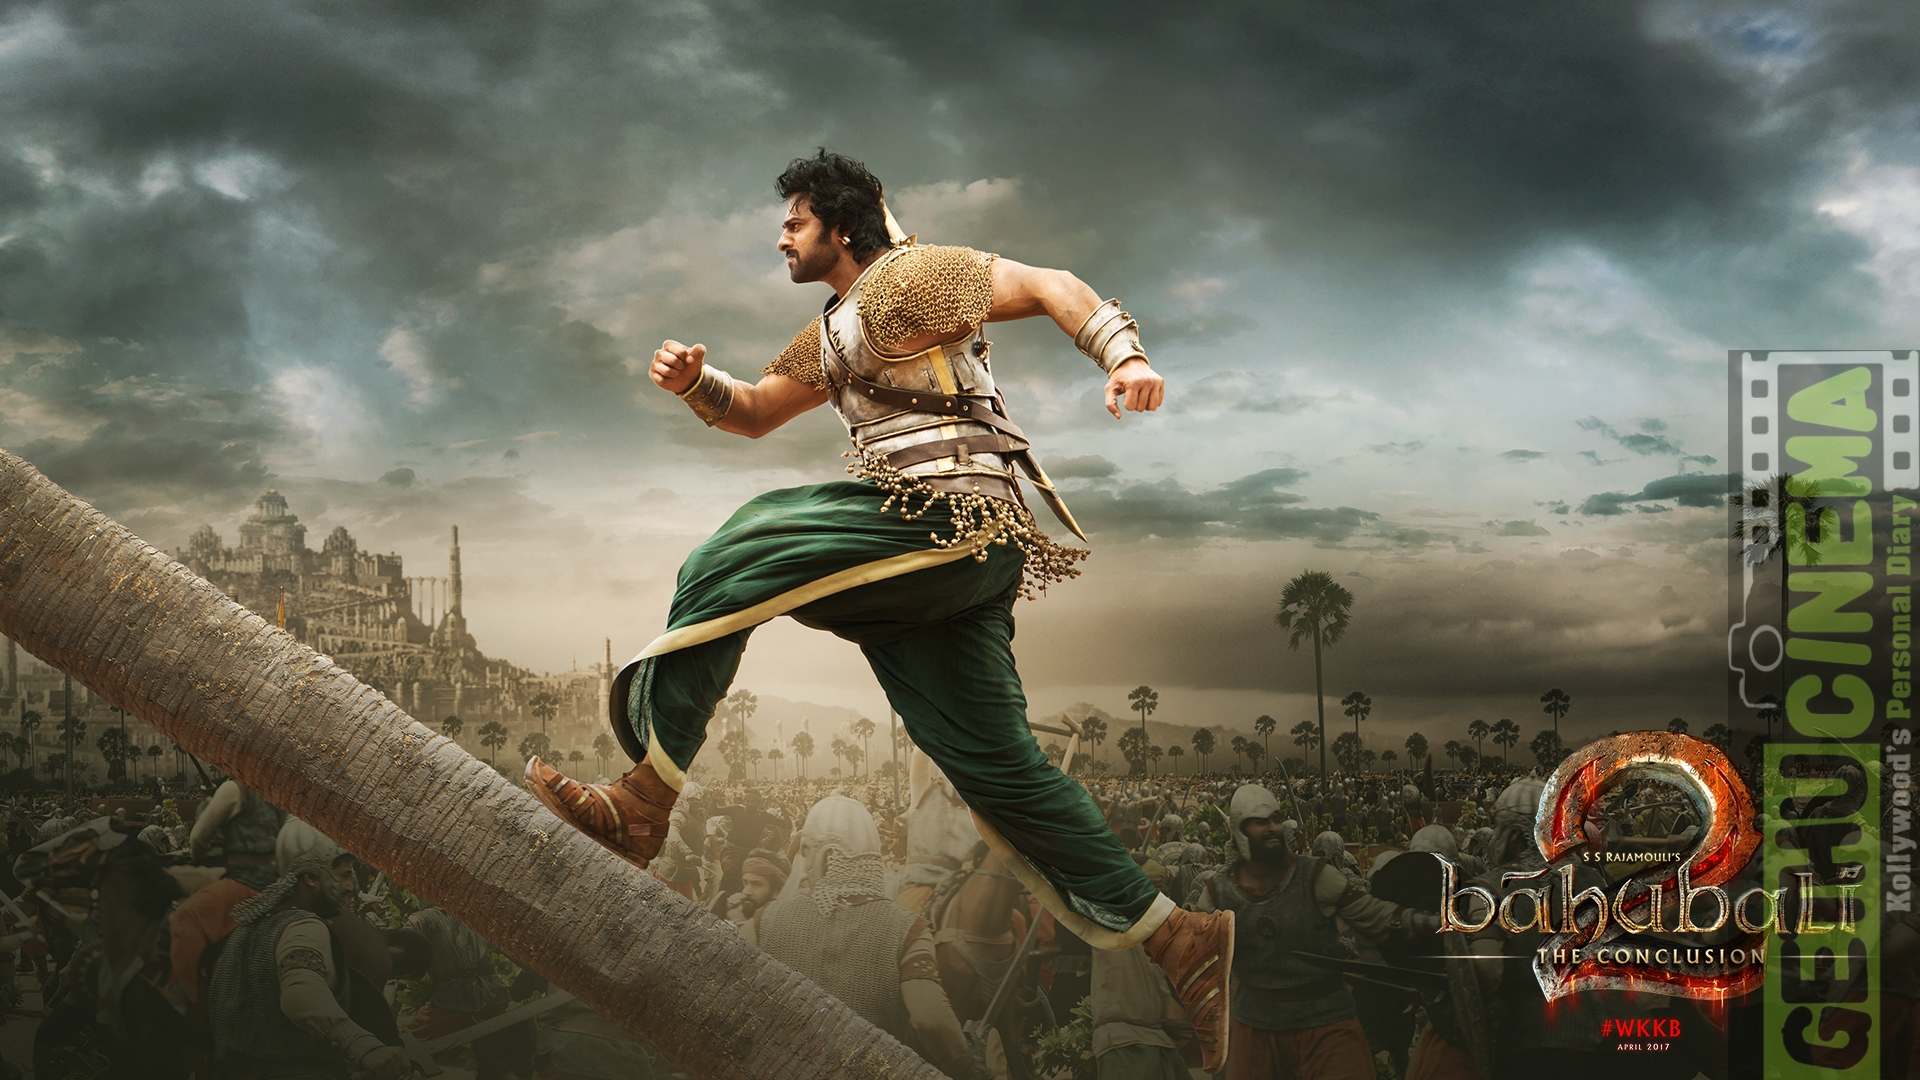 baahubali-the-conclusion-wallpaper-desktop-High Resolution - Gethucinema-1 (7)